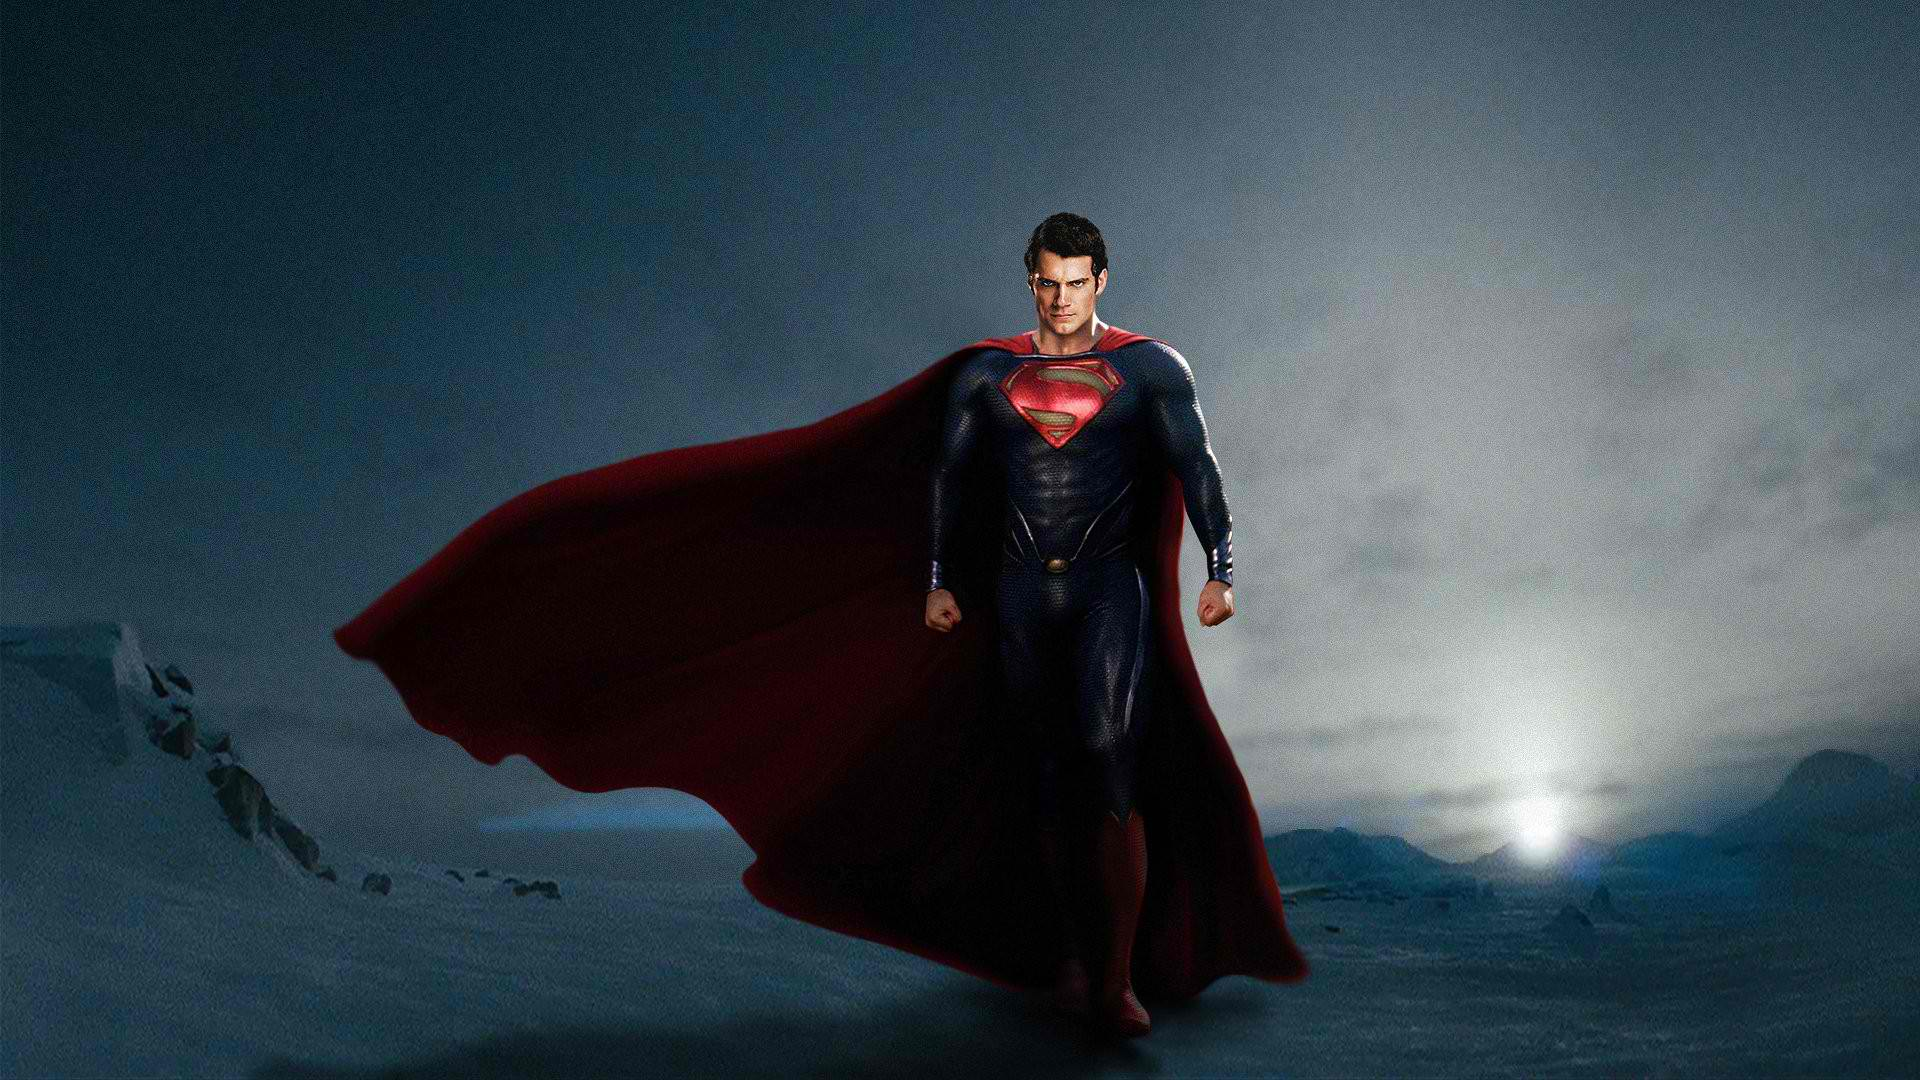 Man of Steel Promo Artwork New UK Trailer for Superman: Man of Steel